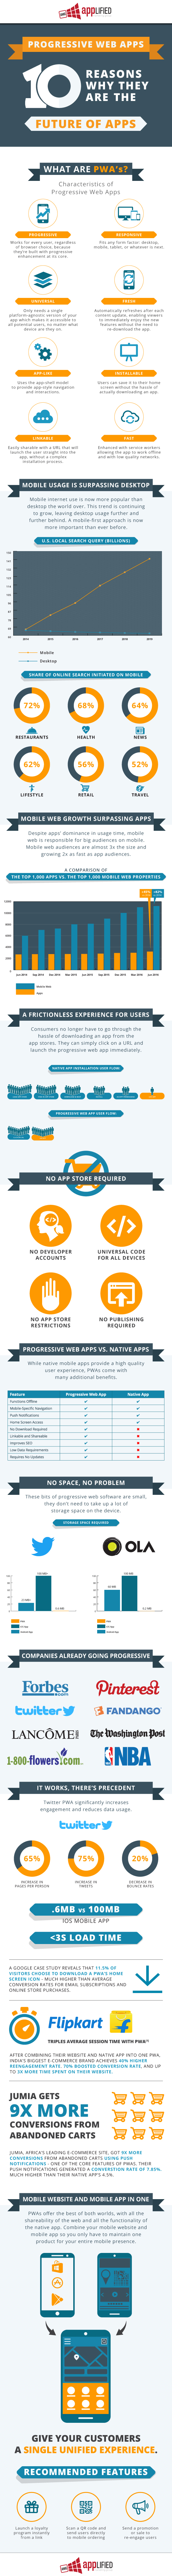 Applified-Progressive-Web-App-Infographic.png